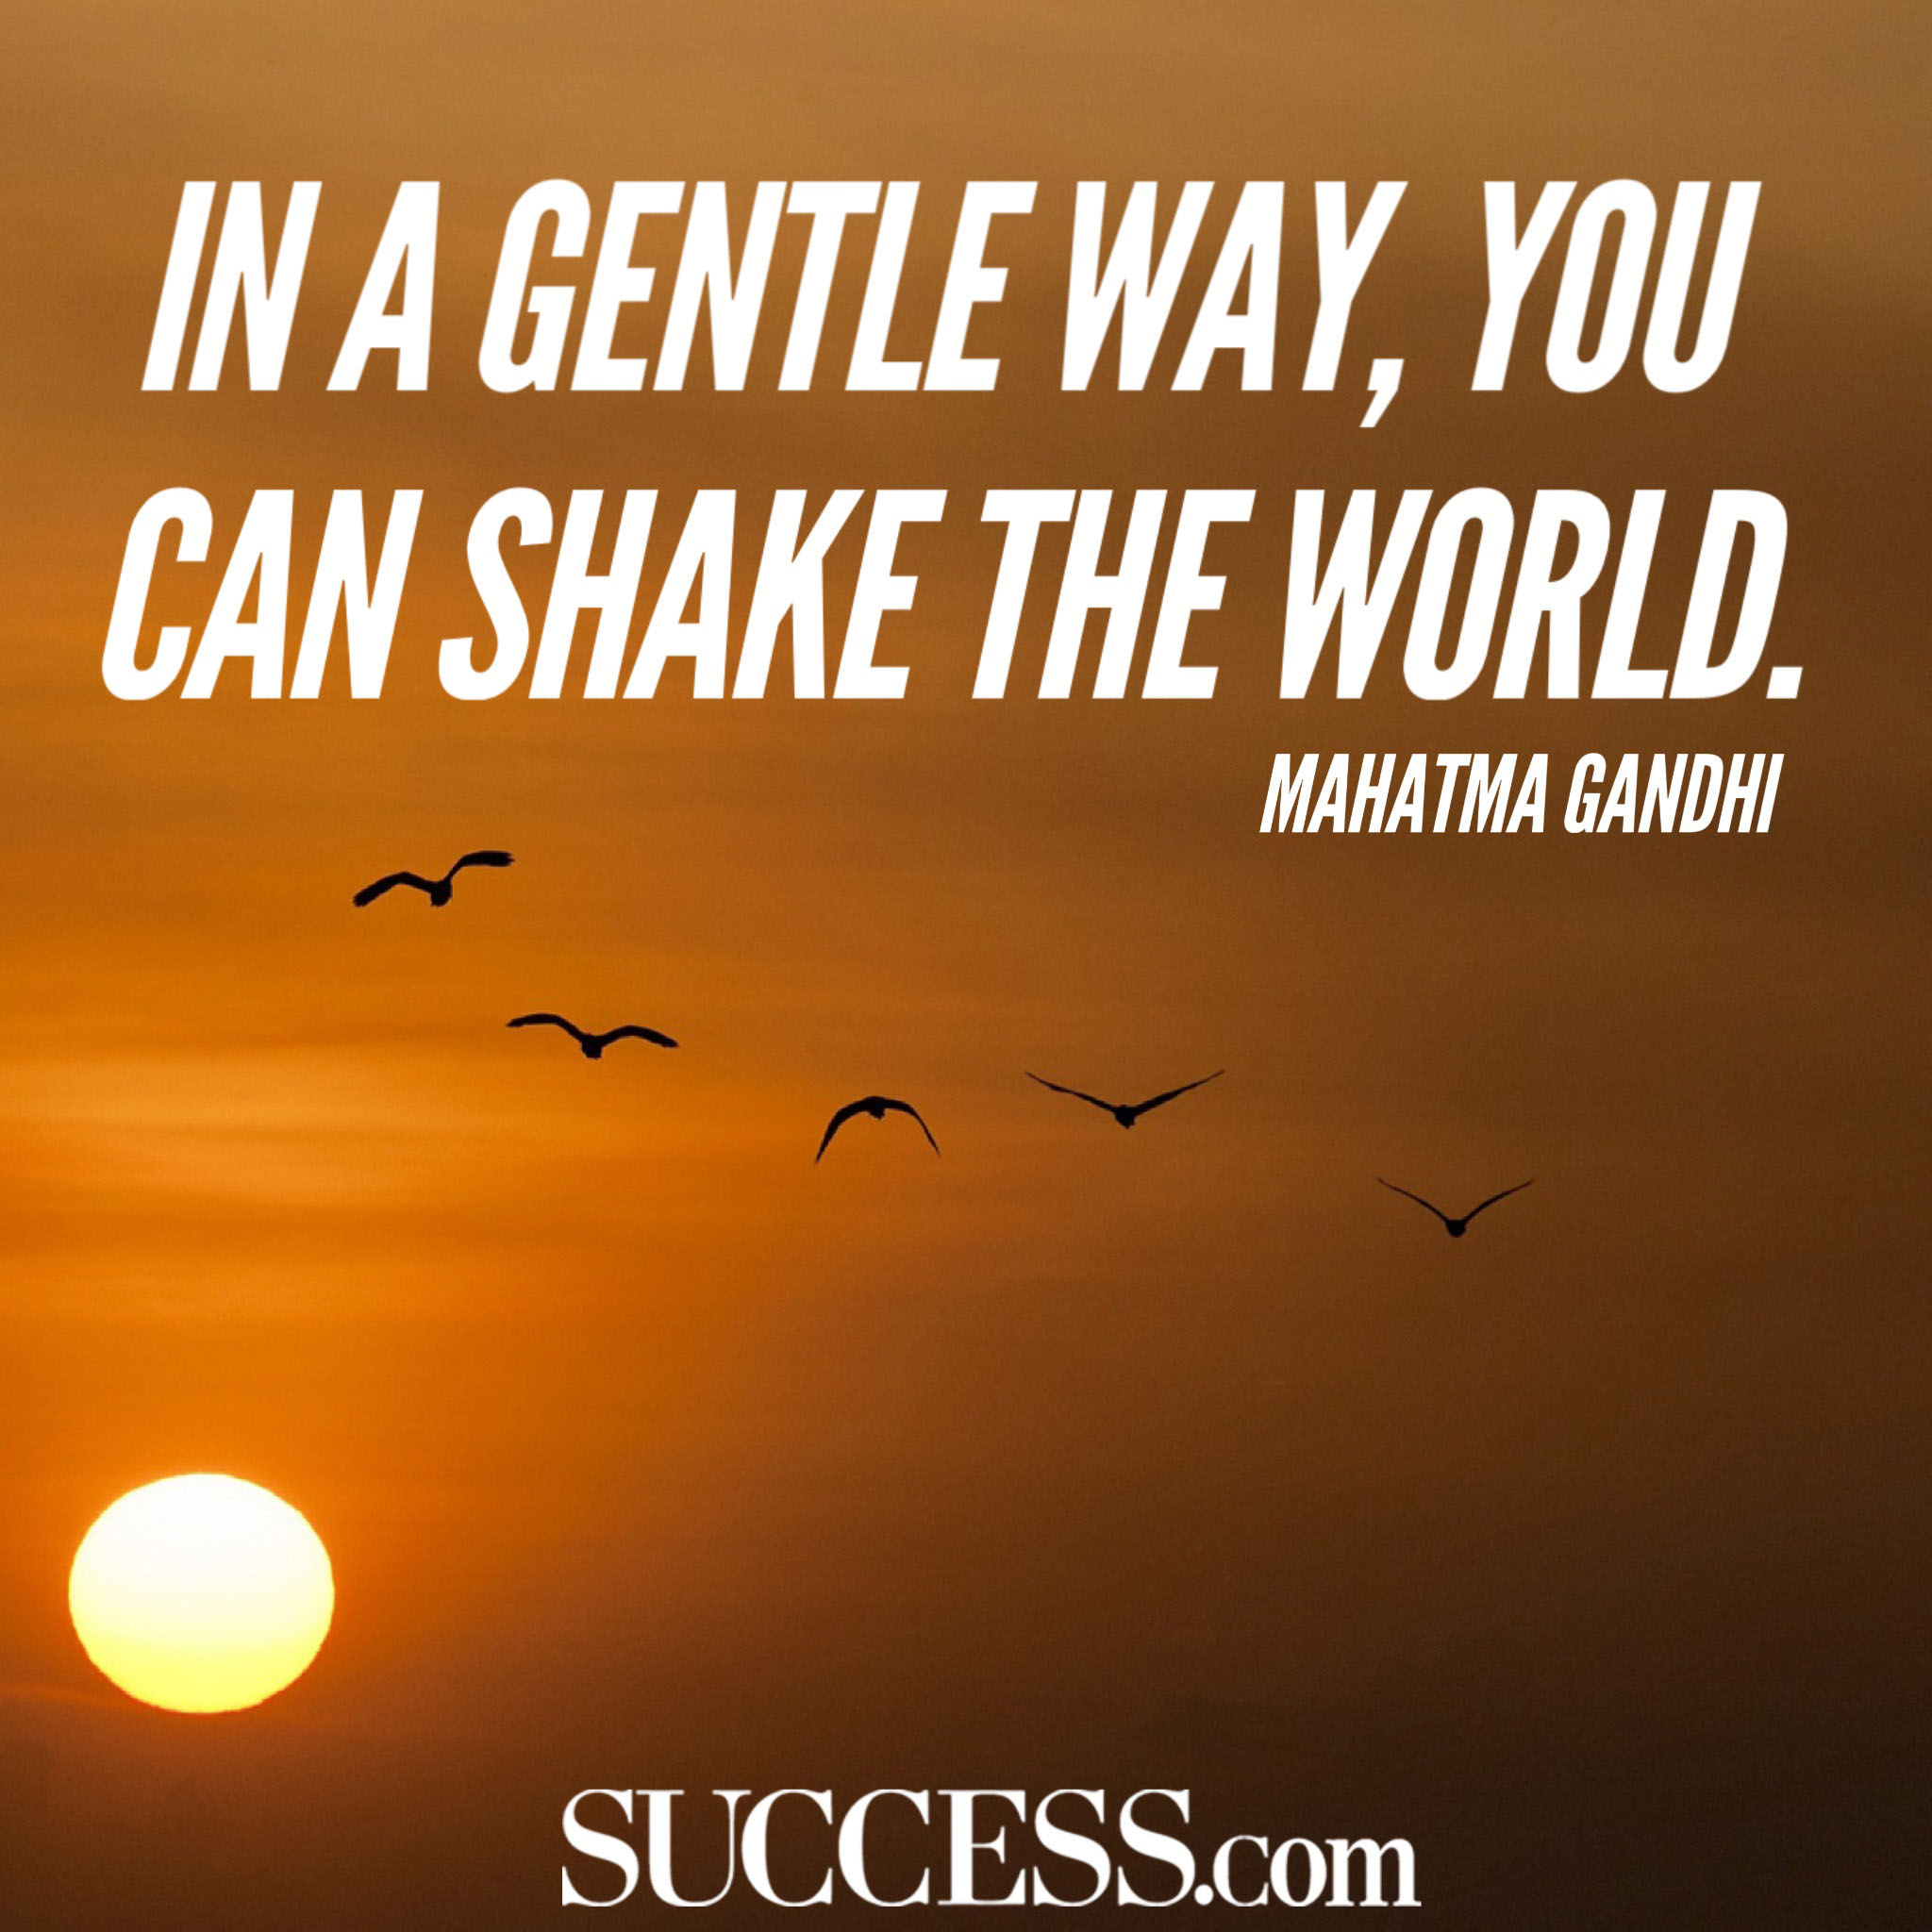 In A Gentle Way, You Can Shake The World. by Mahatma Gandhi